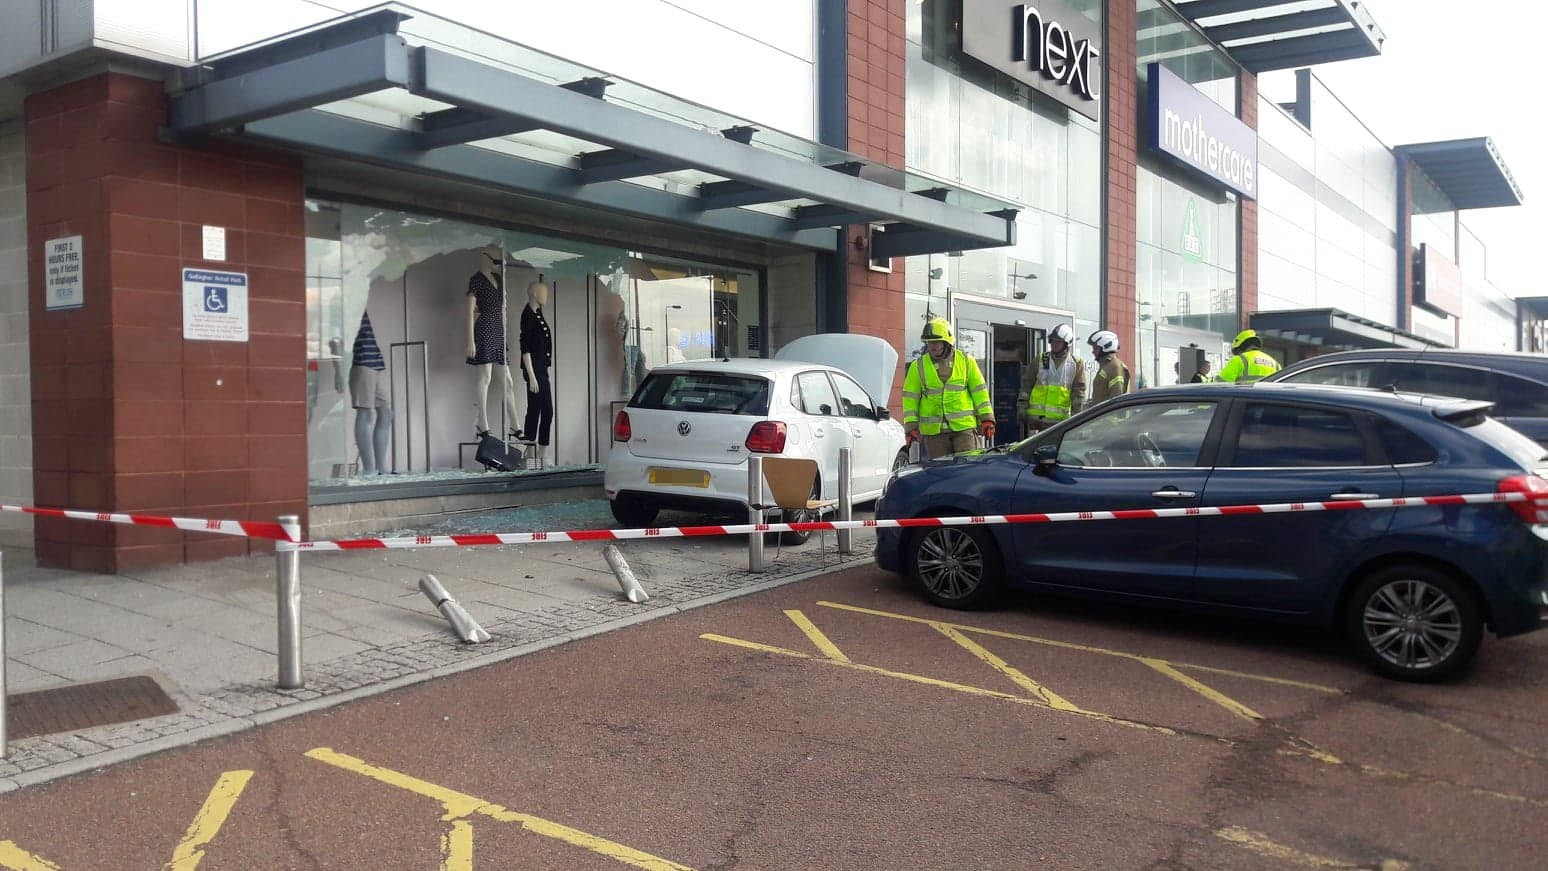 The car at Gallagher Retail Park